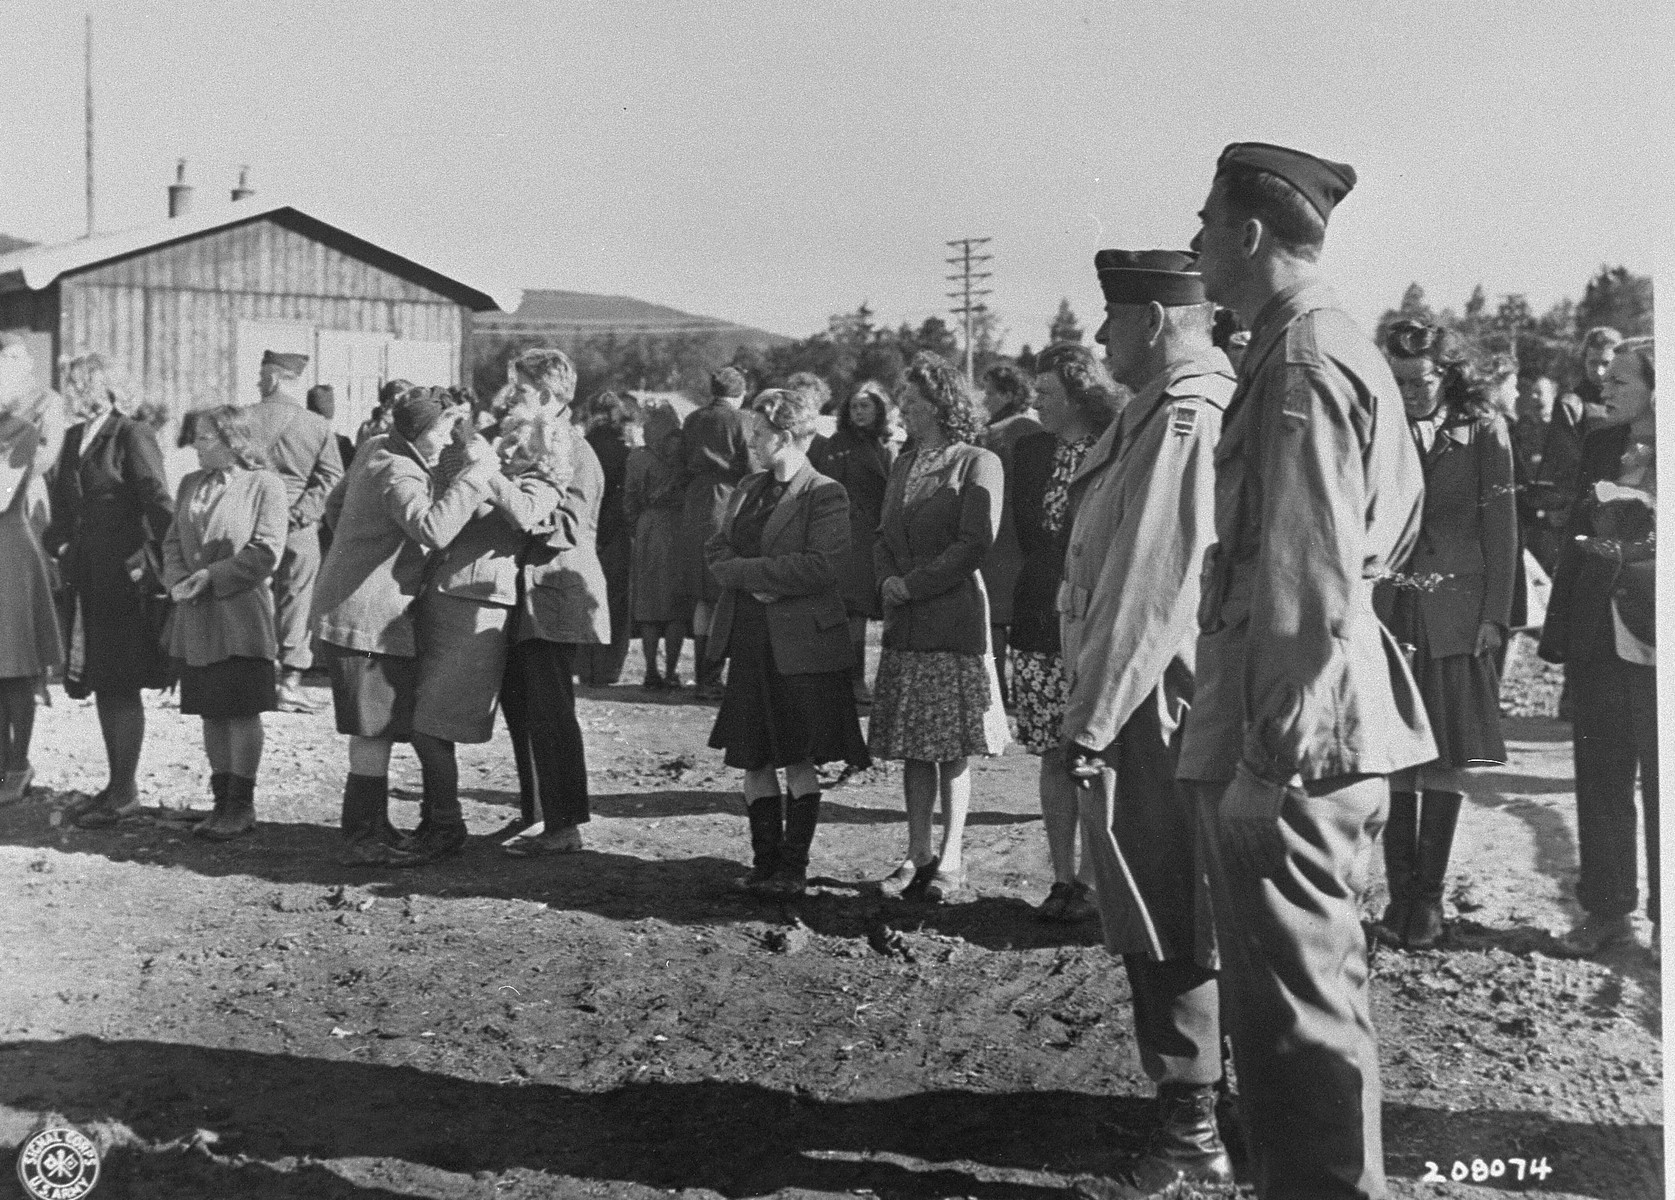 Brigadier General Owen Summers and Colonel Walker look on as Norwegian women suspected of collaborating with the Germans are screened by Allied authorities.